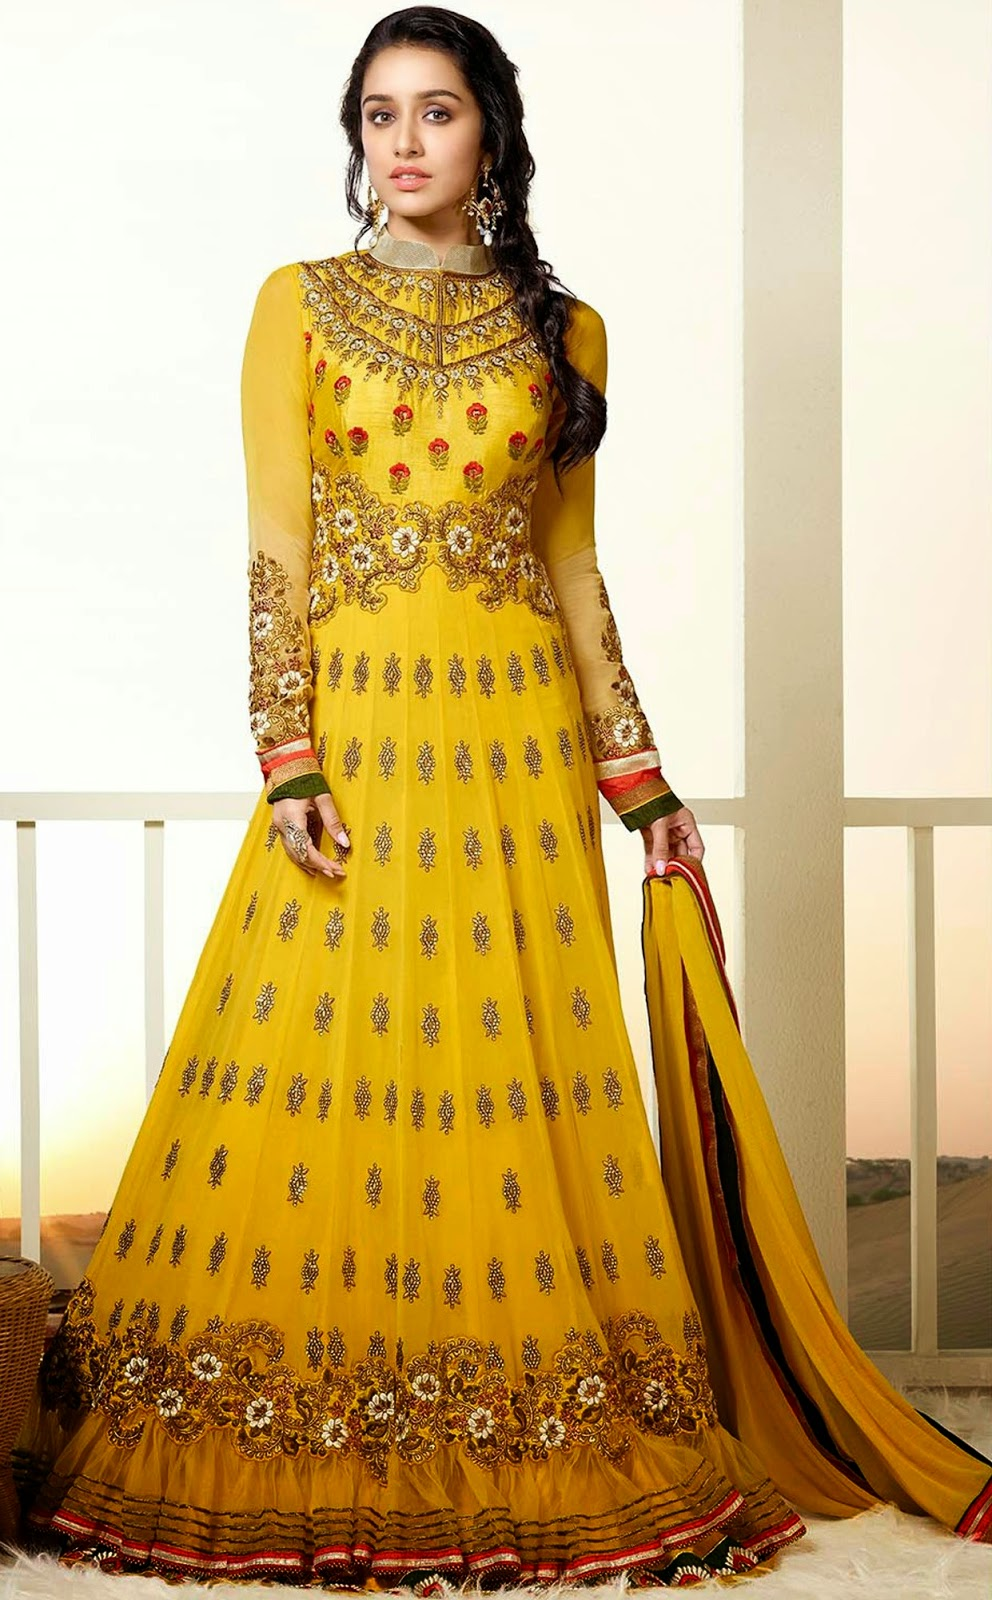 Shraddha Kapoor Anarkali Suit Wallpapers Free Download